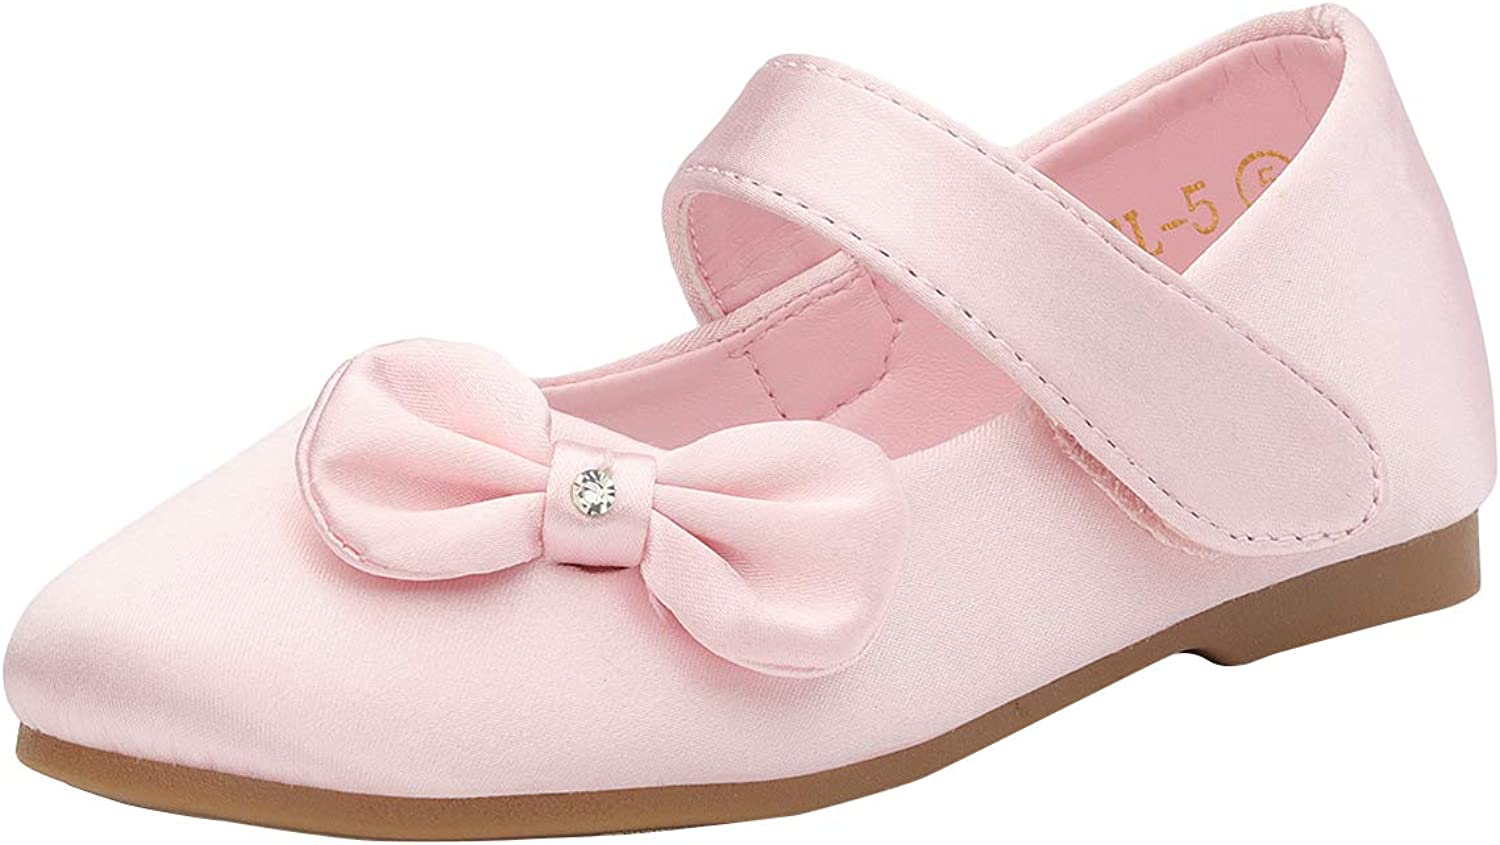 DREAM PAIRS Adorable Mary Jane Side Bow Buckle Strap Ballerina Flat (Toddler/Little Girl)